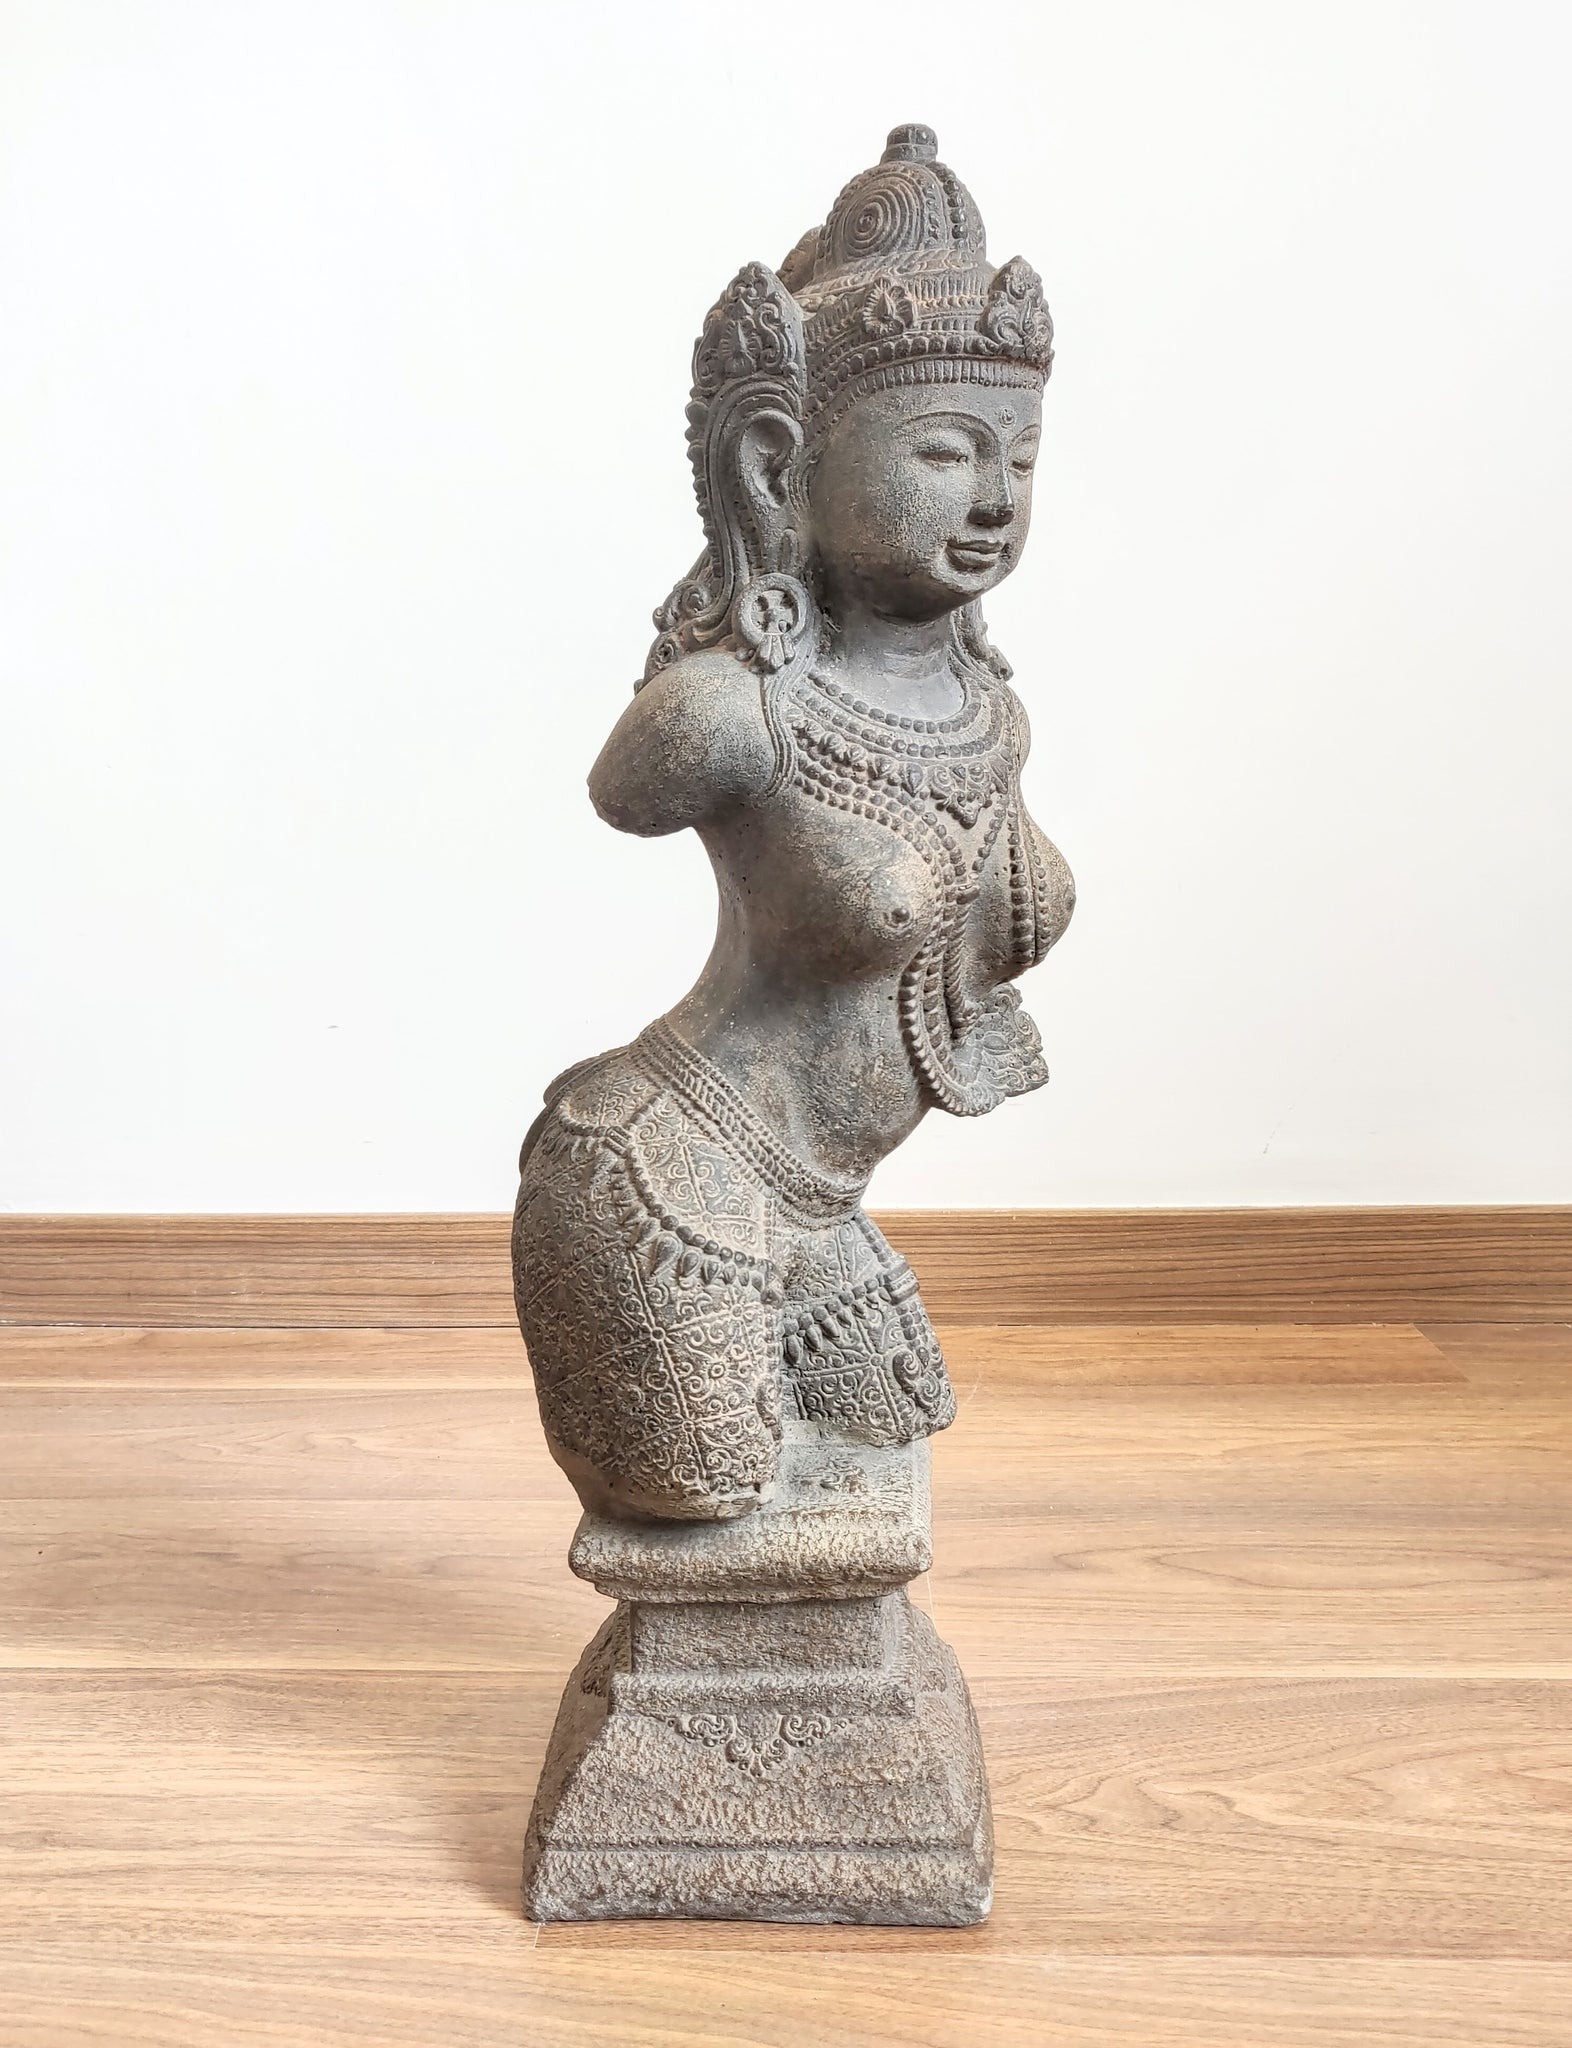 Home Decor: Table - Outdoor Statue  Large Stone Sculpture of